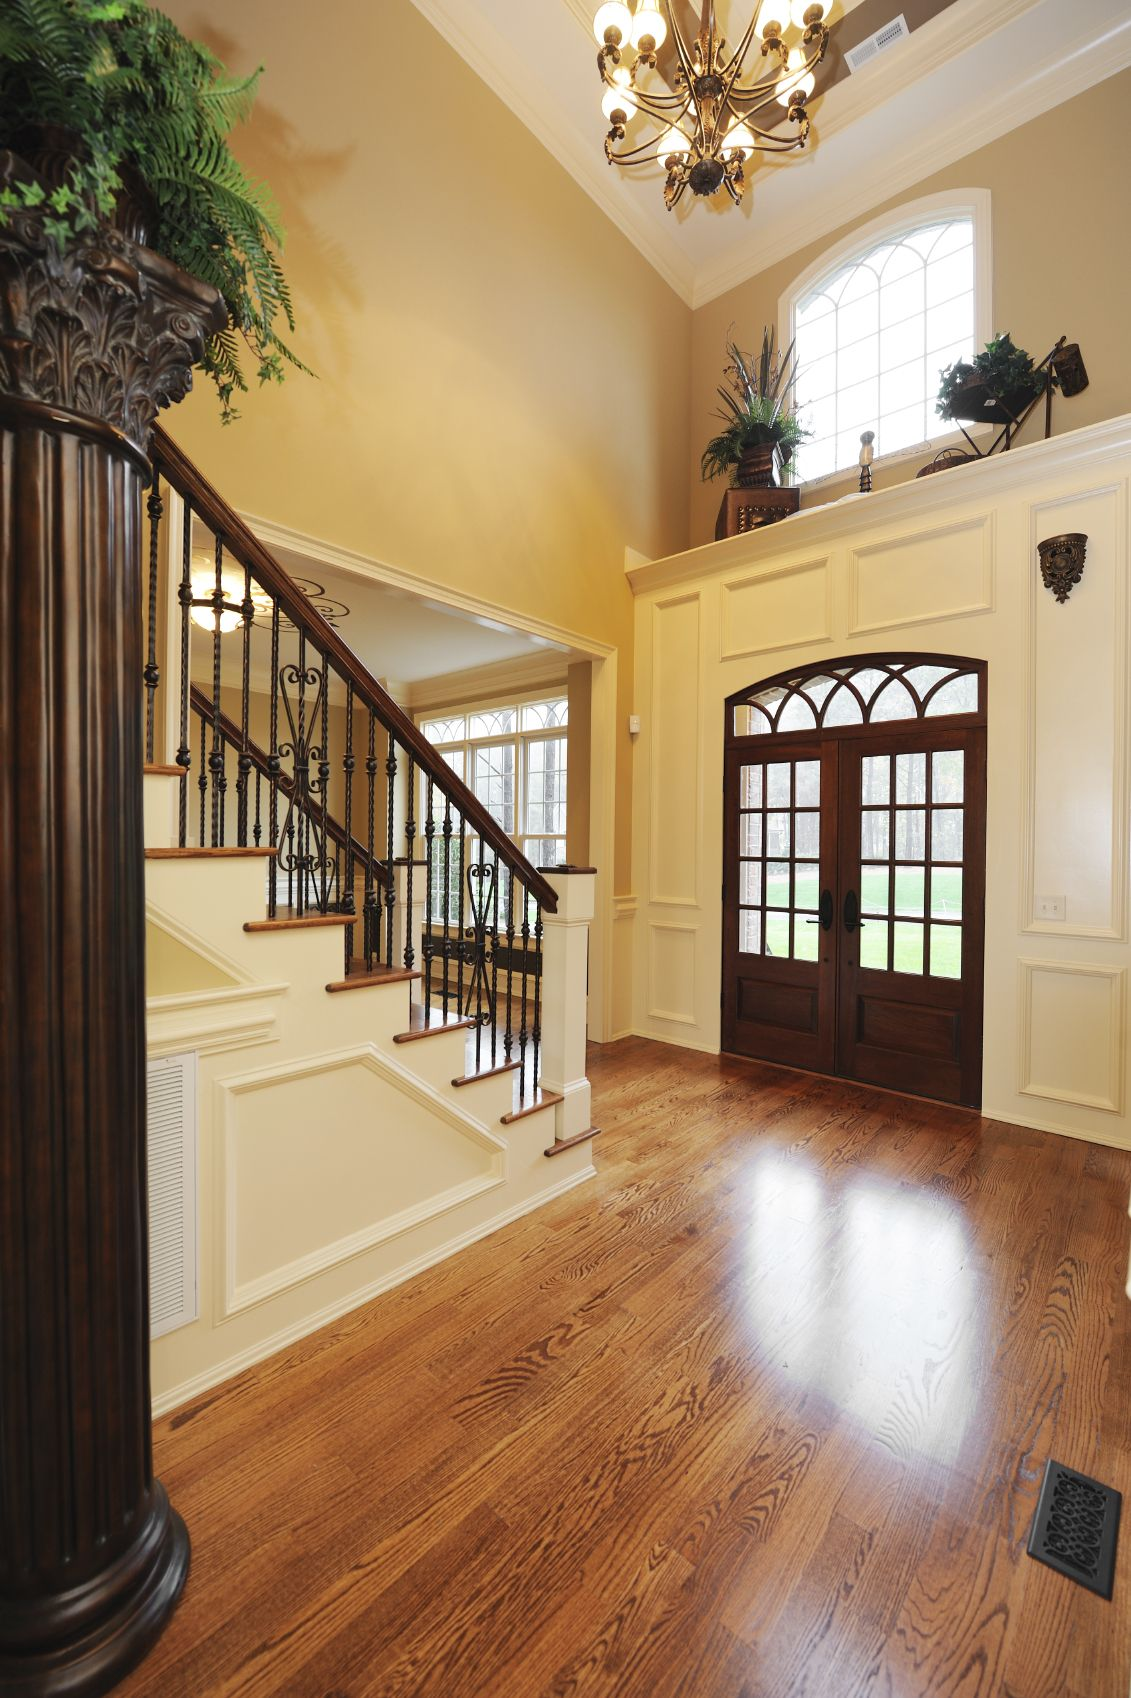 199 Foyer Design Ideas for 2018 (All Colors, Styles and Sizes ...